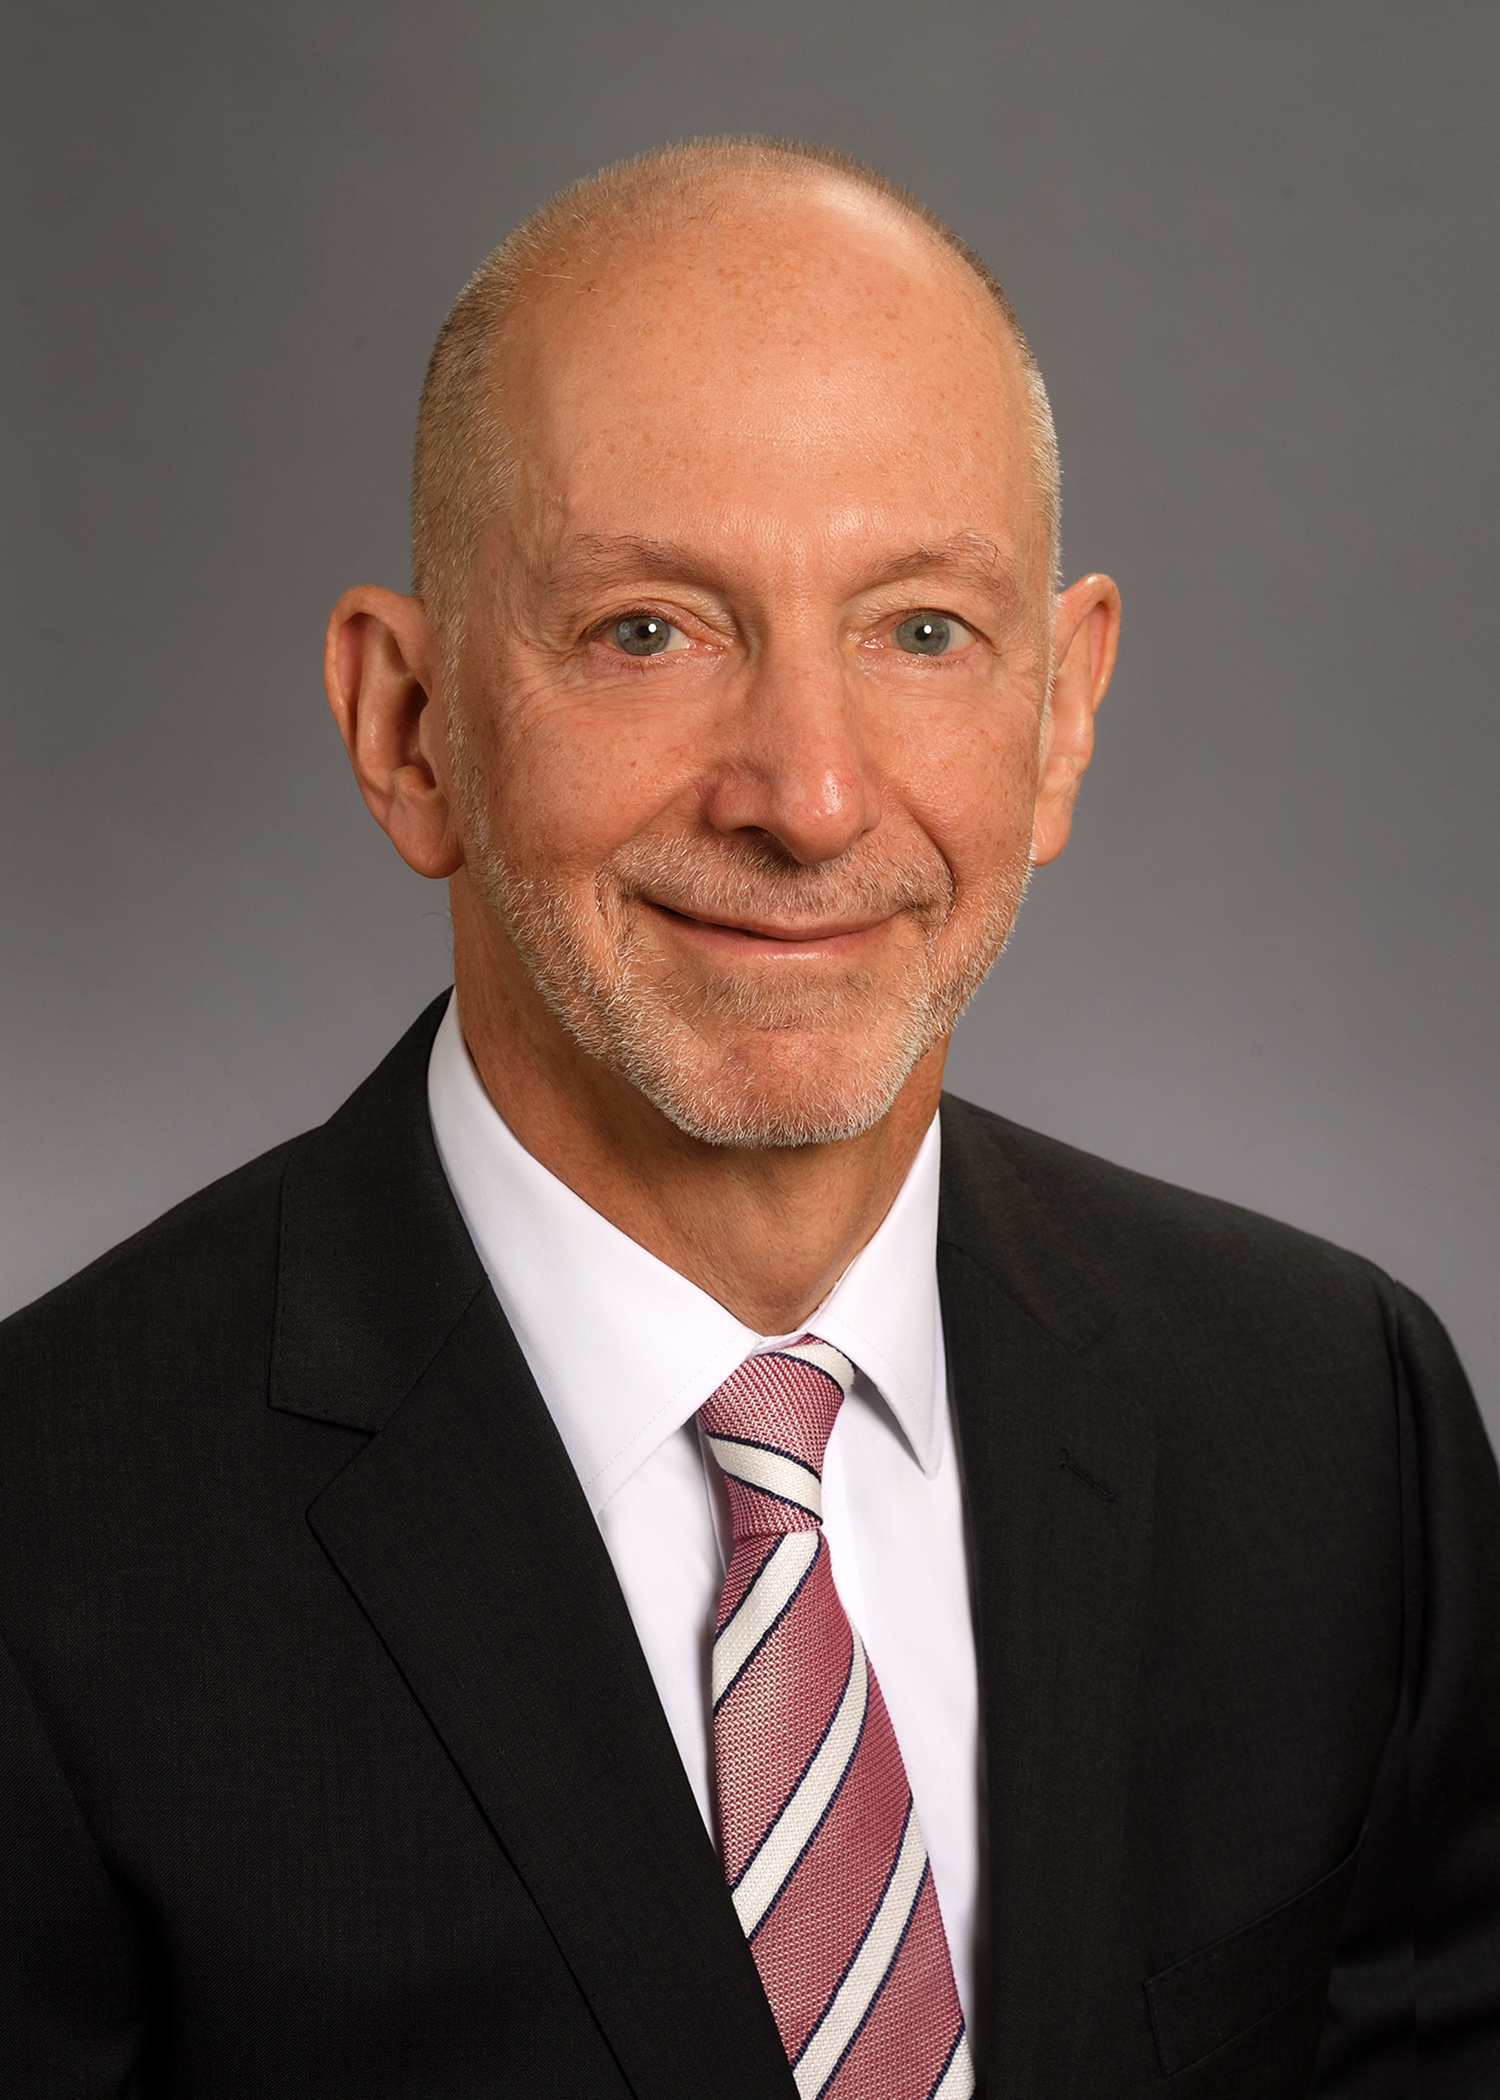 Bill Bornstein, MD, PhD,  Chief Medical Officer & Chief Quality and Patient Safety Officer, Emory Healthcare